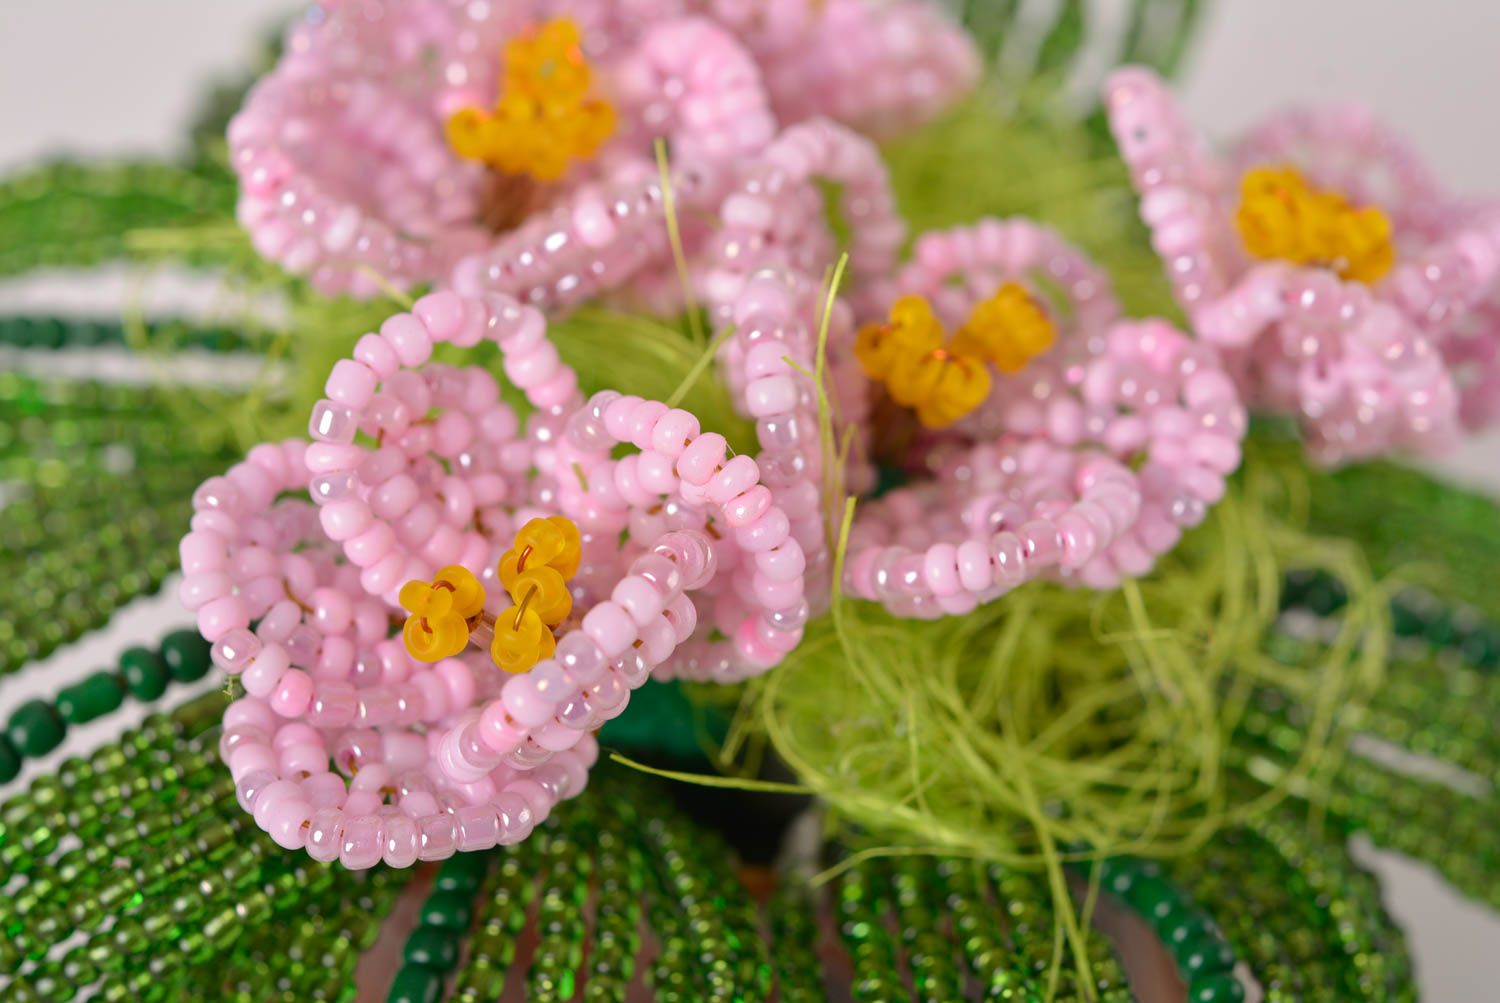 Beaded flowers handmade decorations fake flowers for decorative use only photo 2